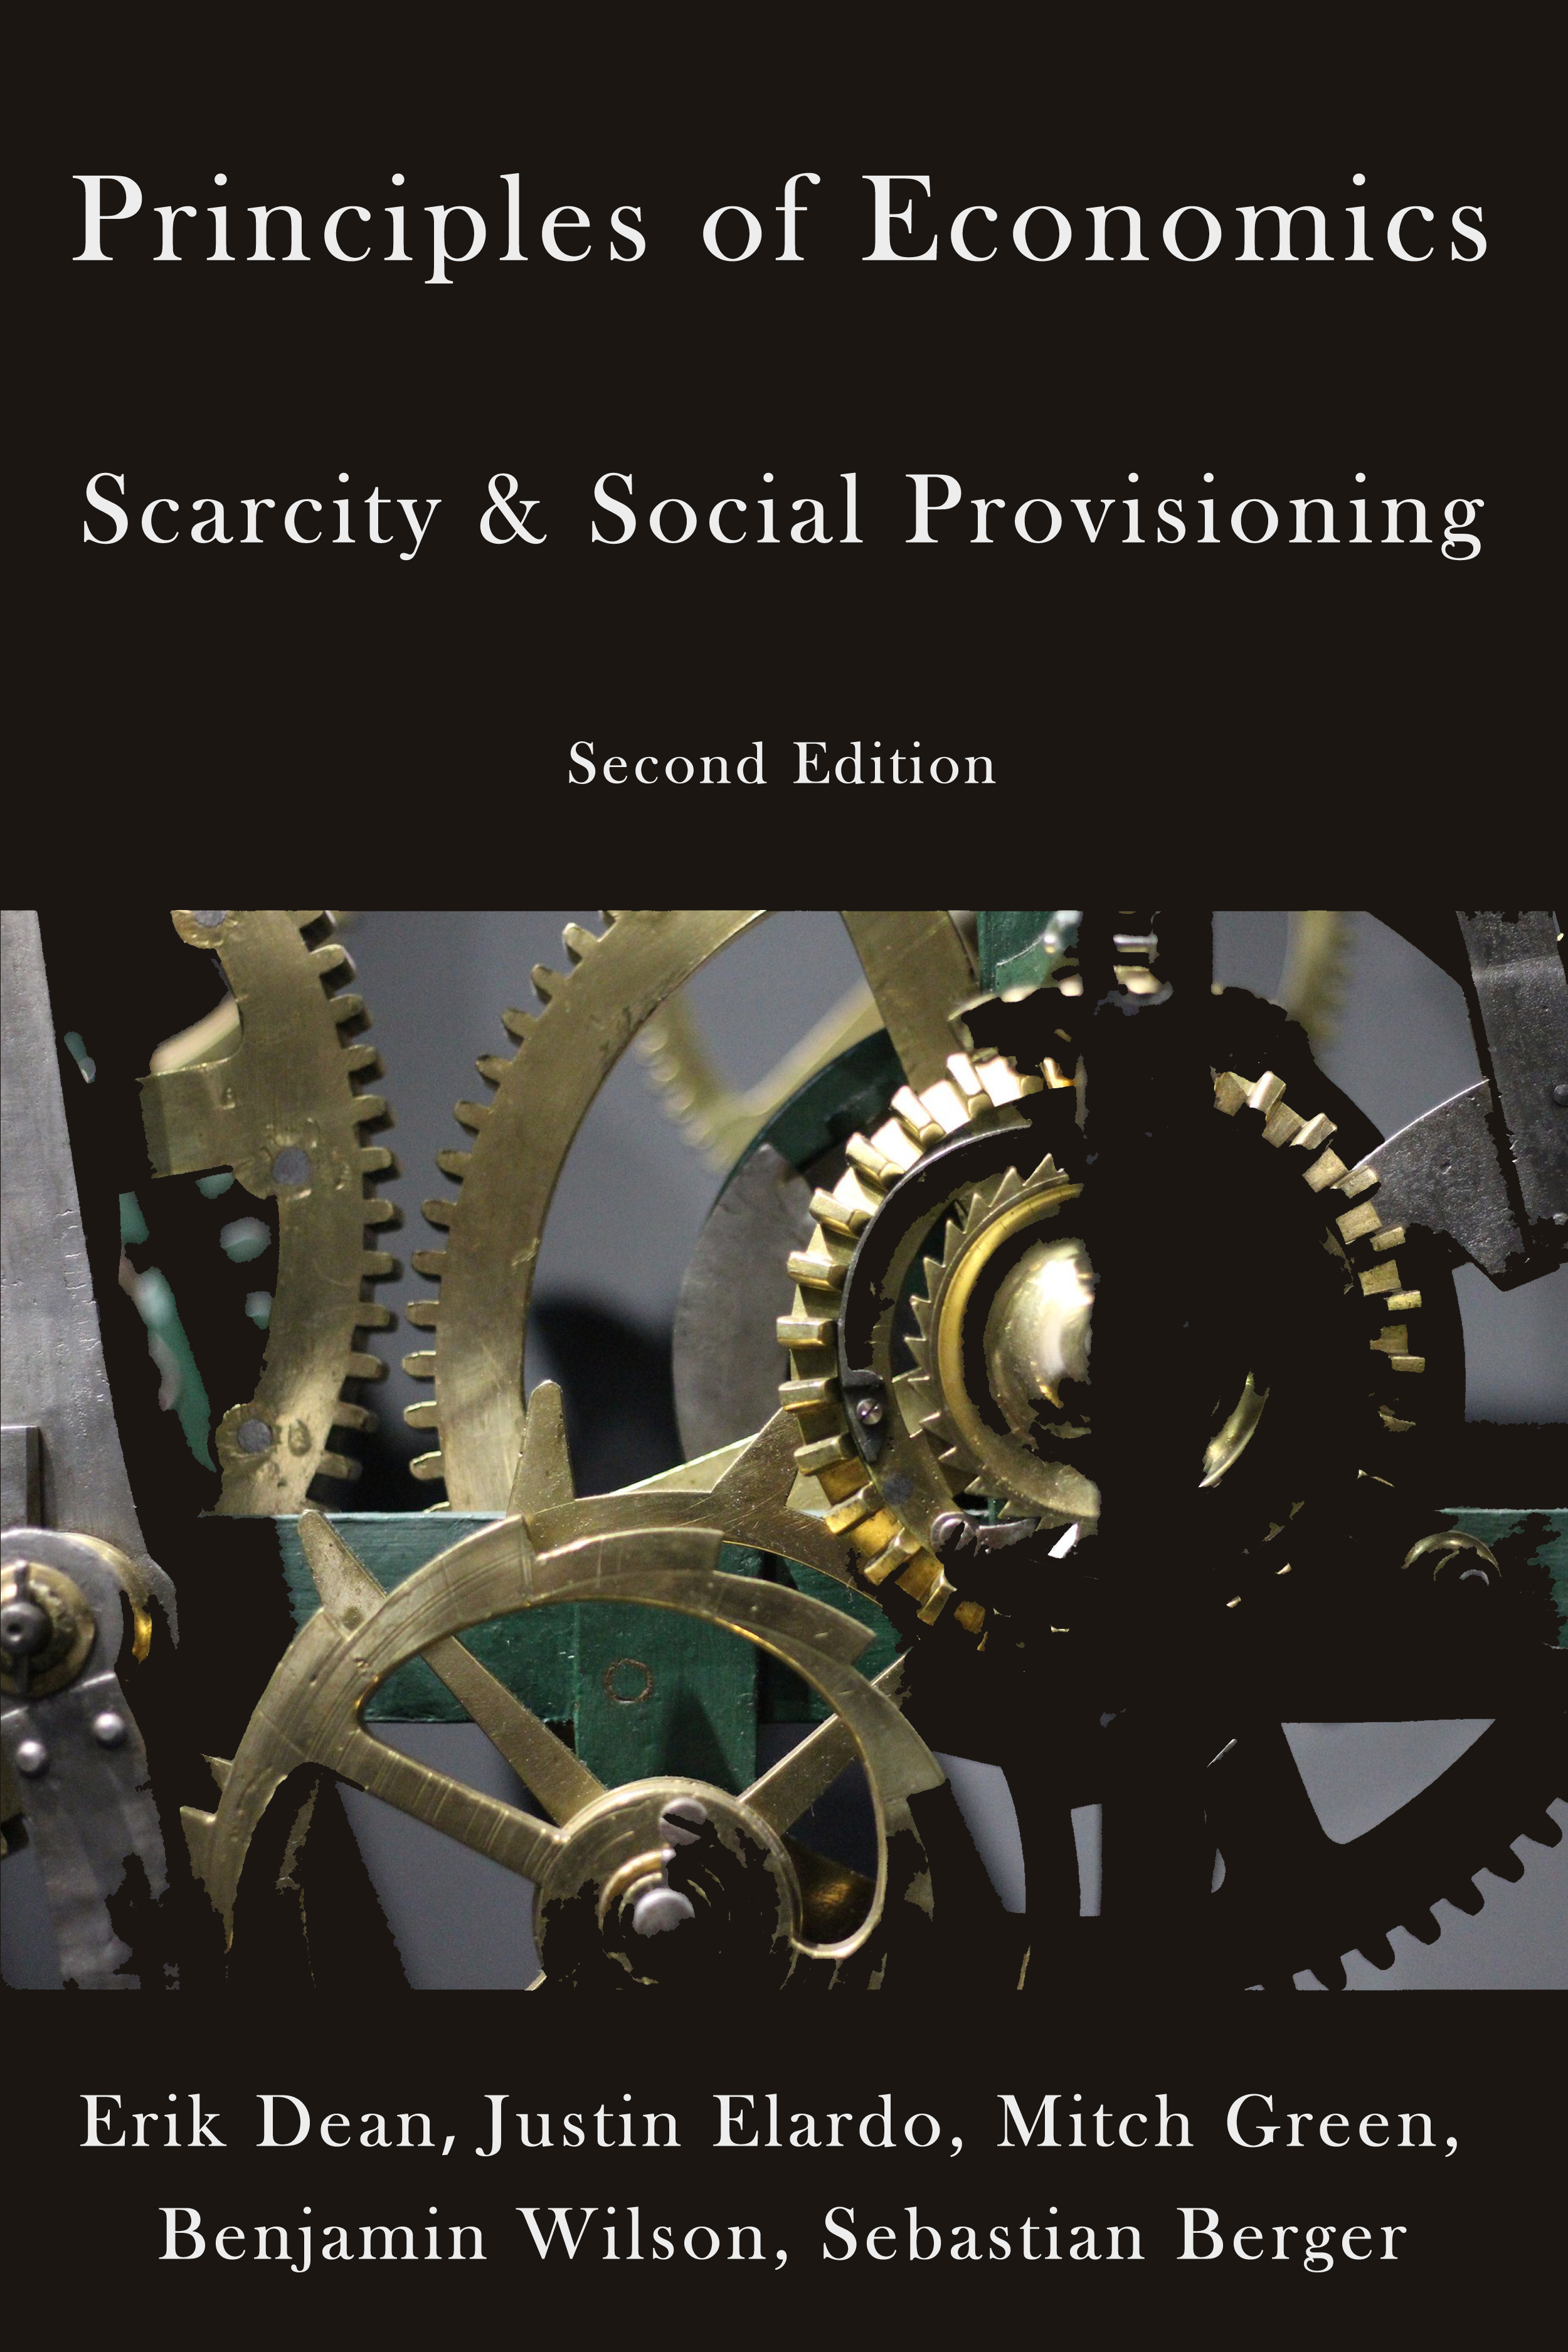 Principles of Economics: Scarcity and Social Provisioning (2nd Ed.)